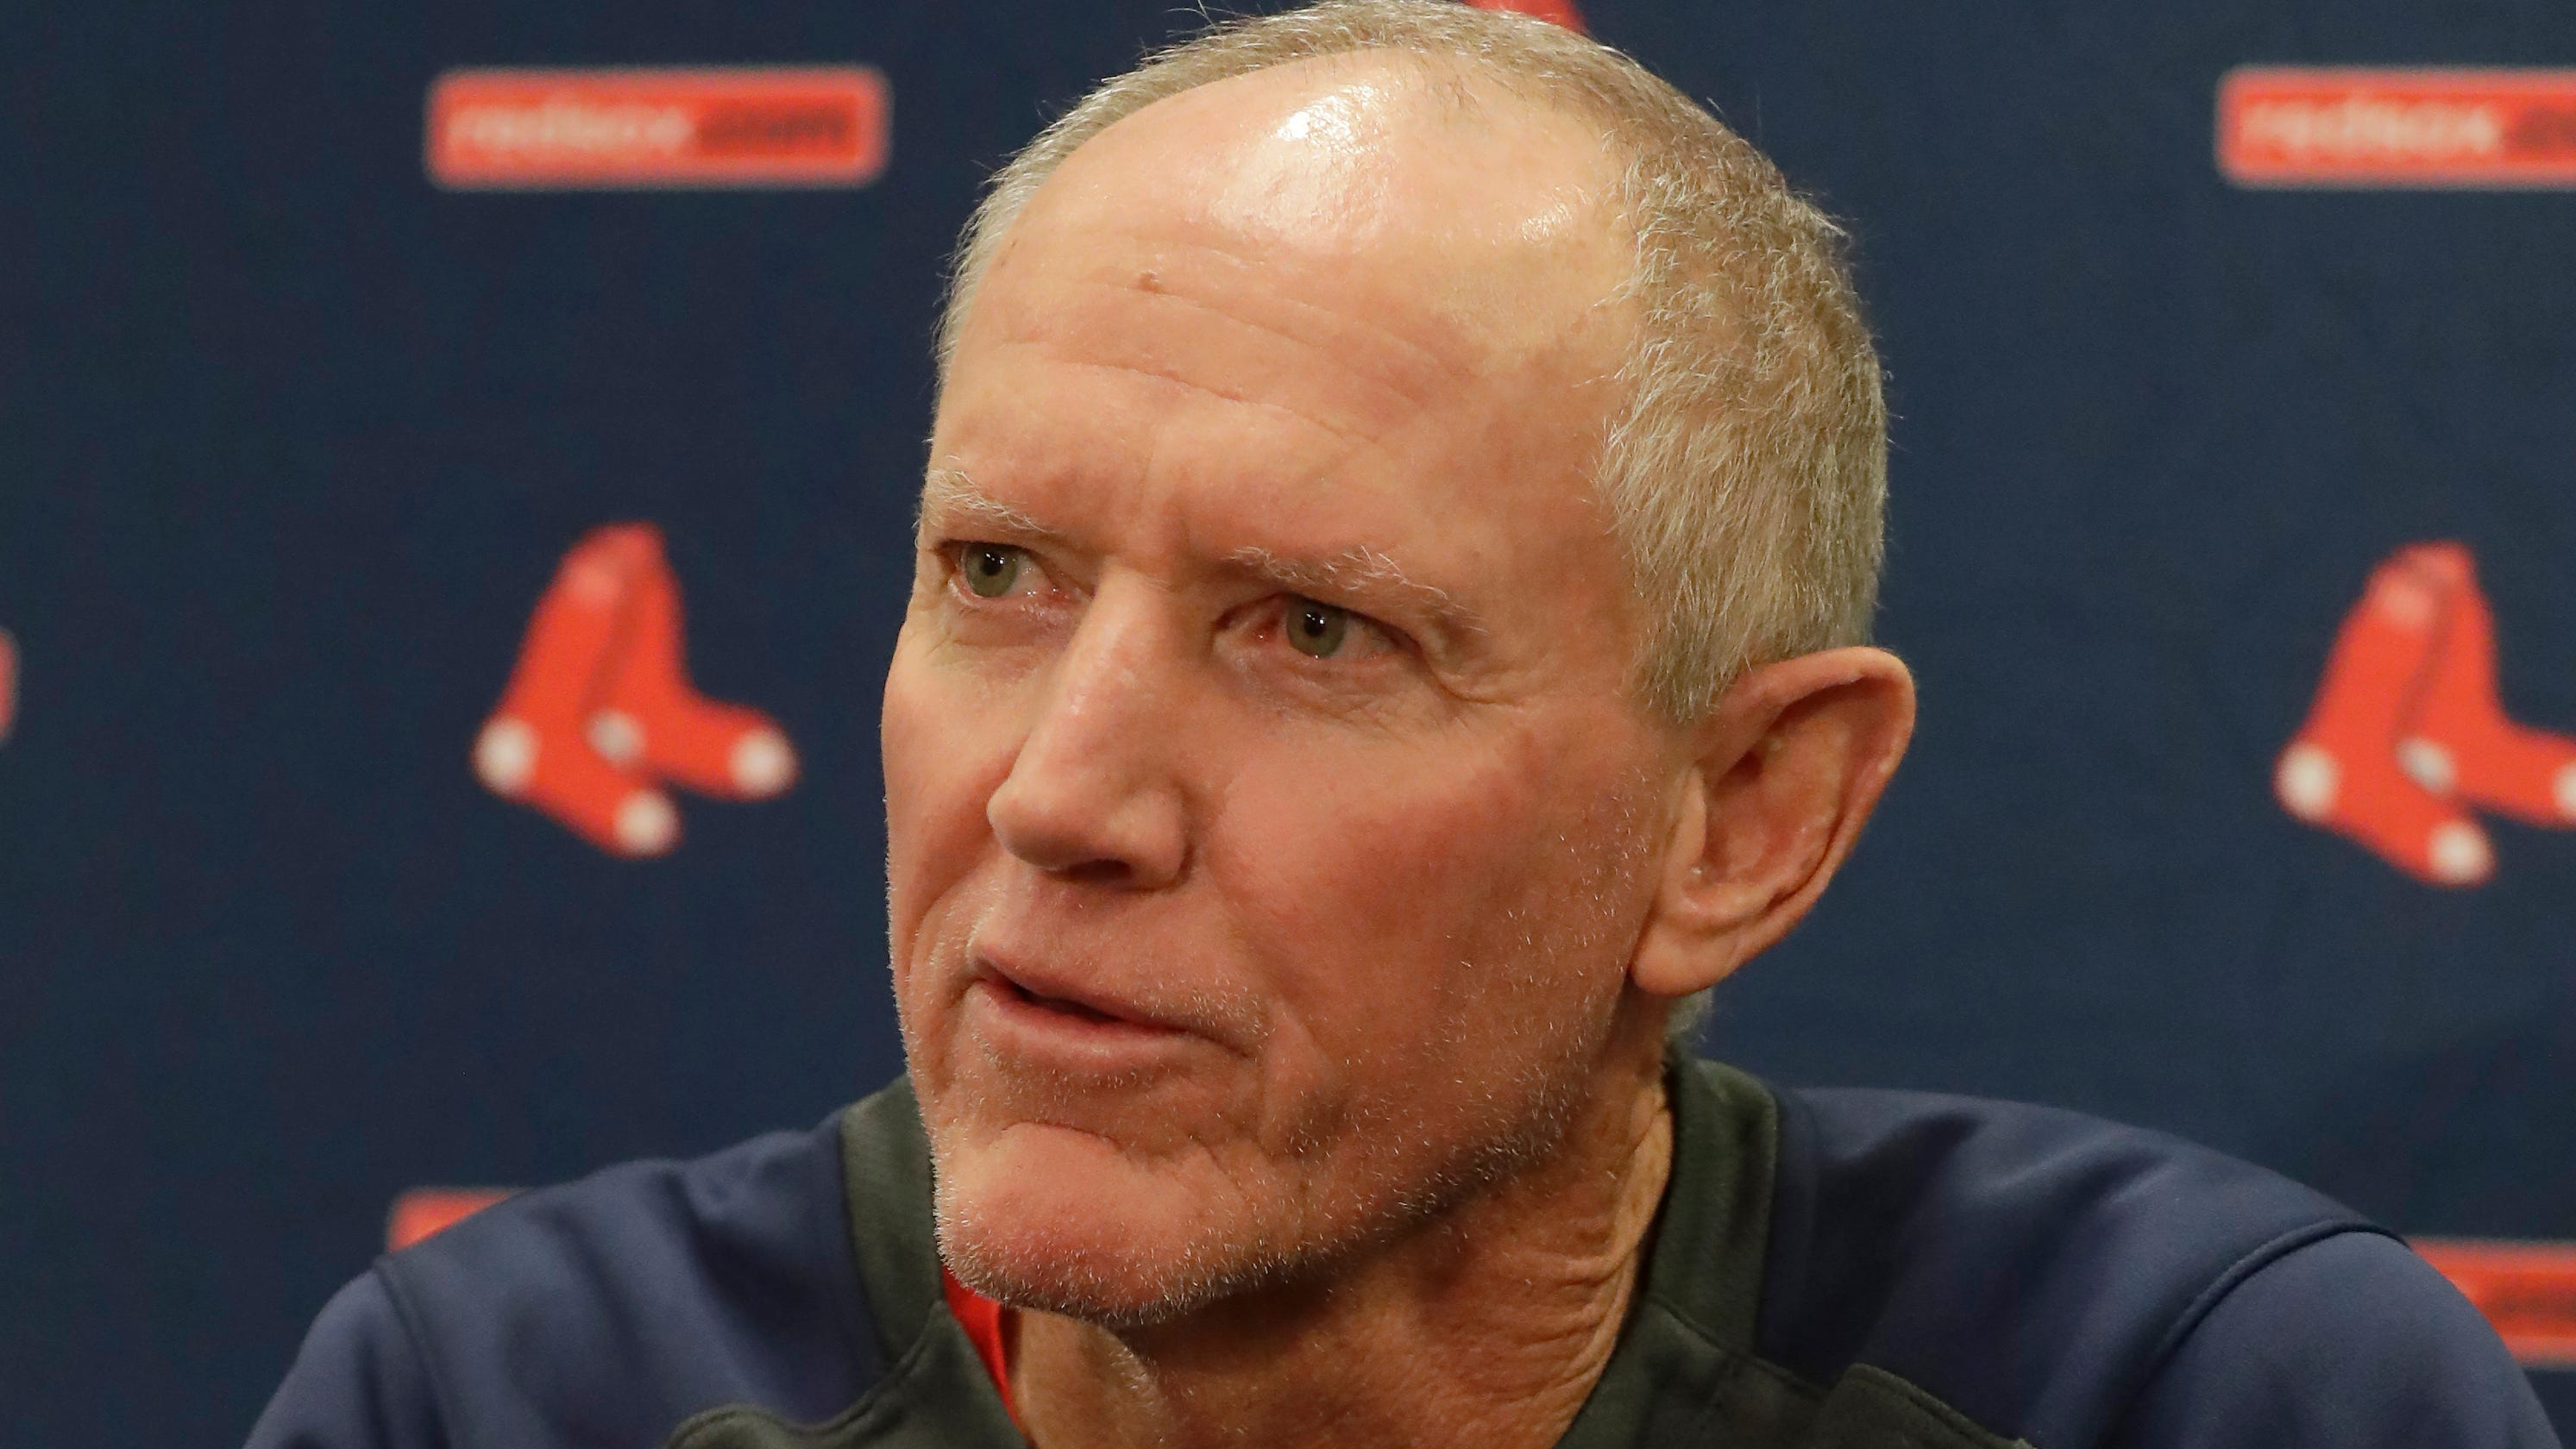 Red Sox announce manager Ron Roenicke won't return after one season